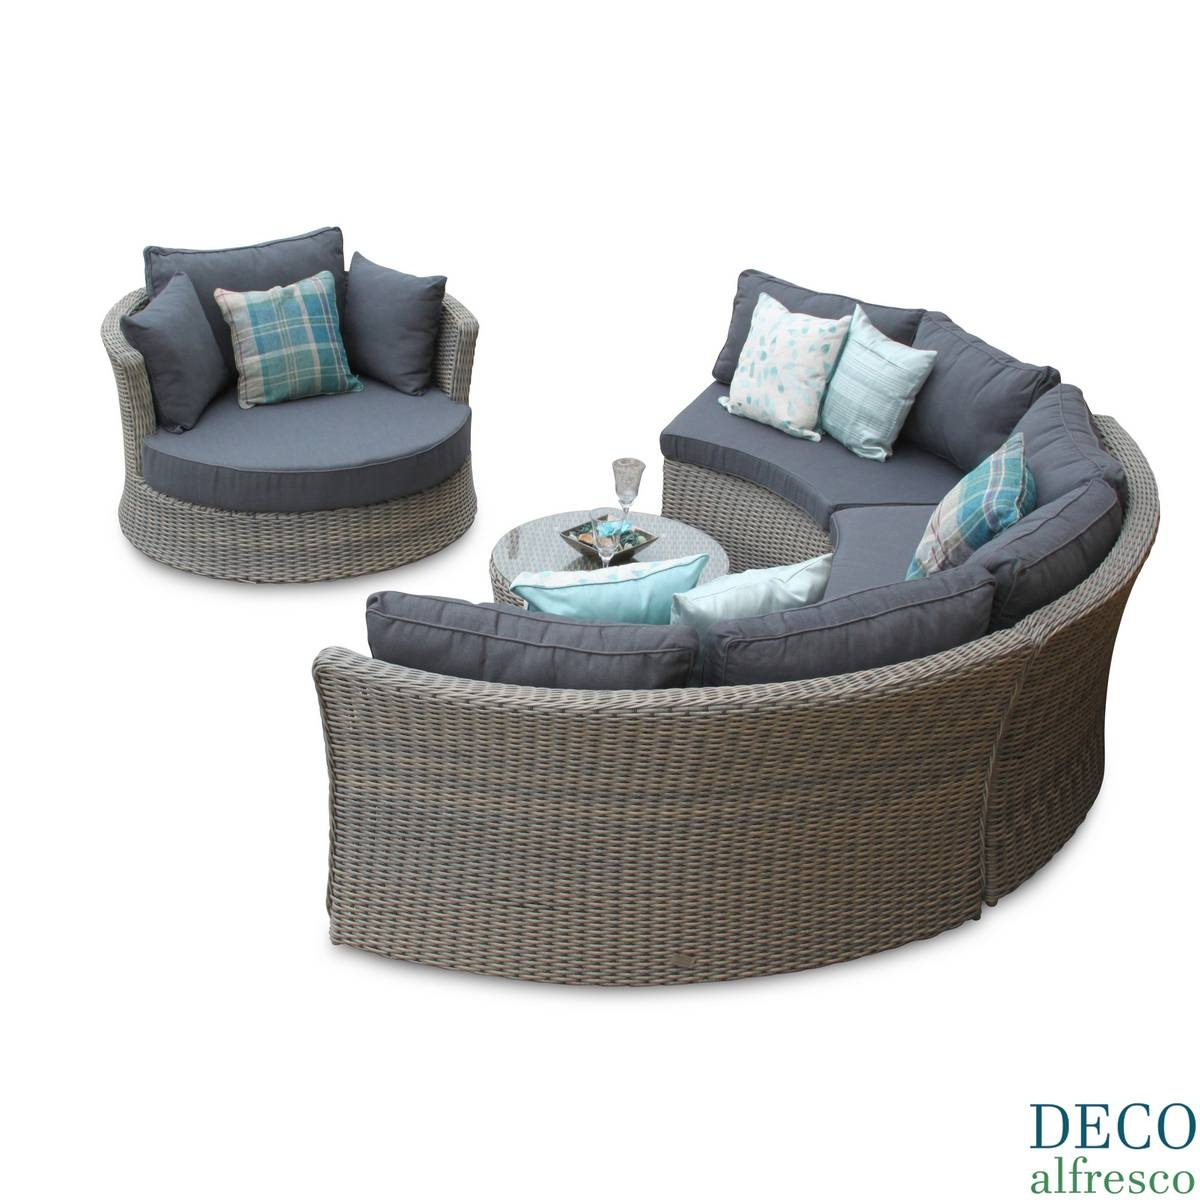 rattan half moon sofa set how to clean white upholstery the best sofas